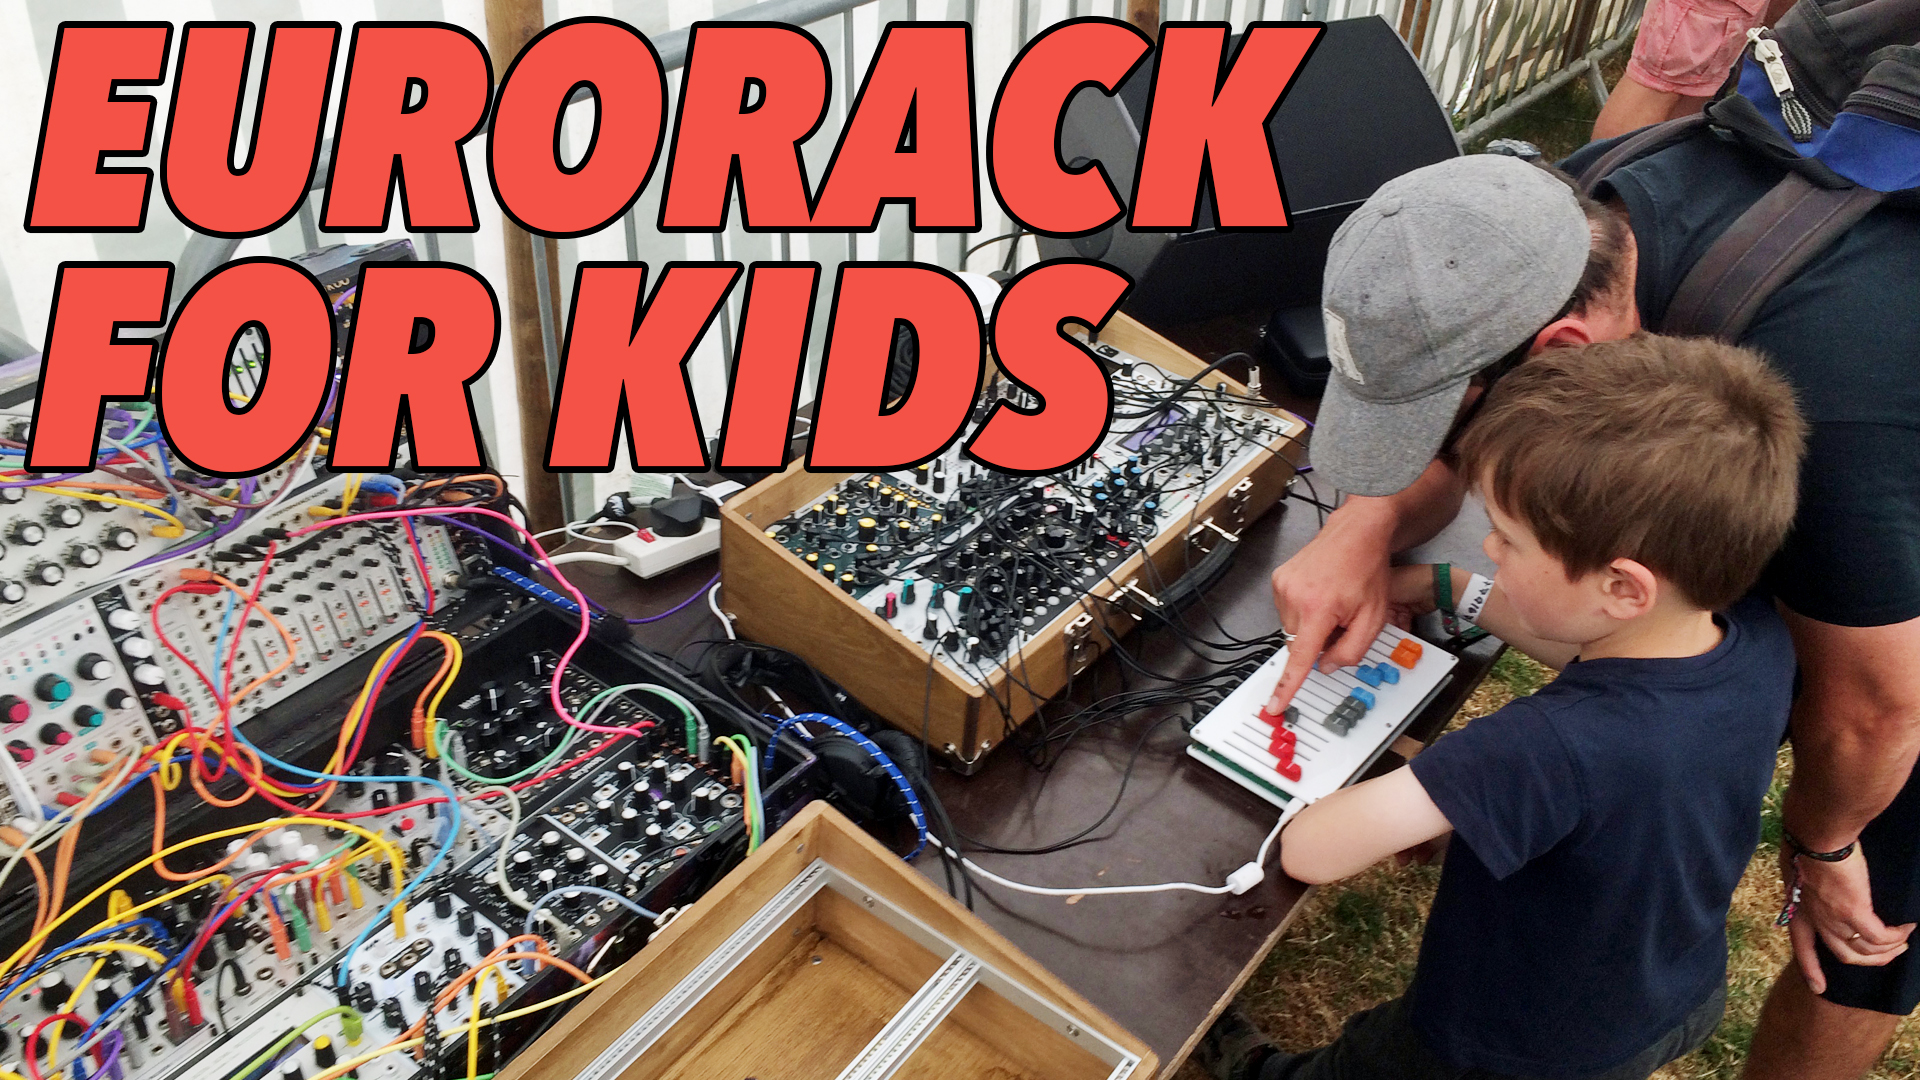 Eurorack for Kids